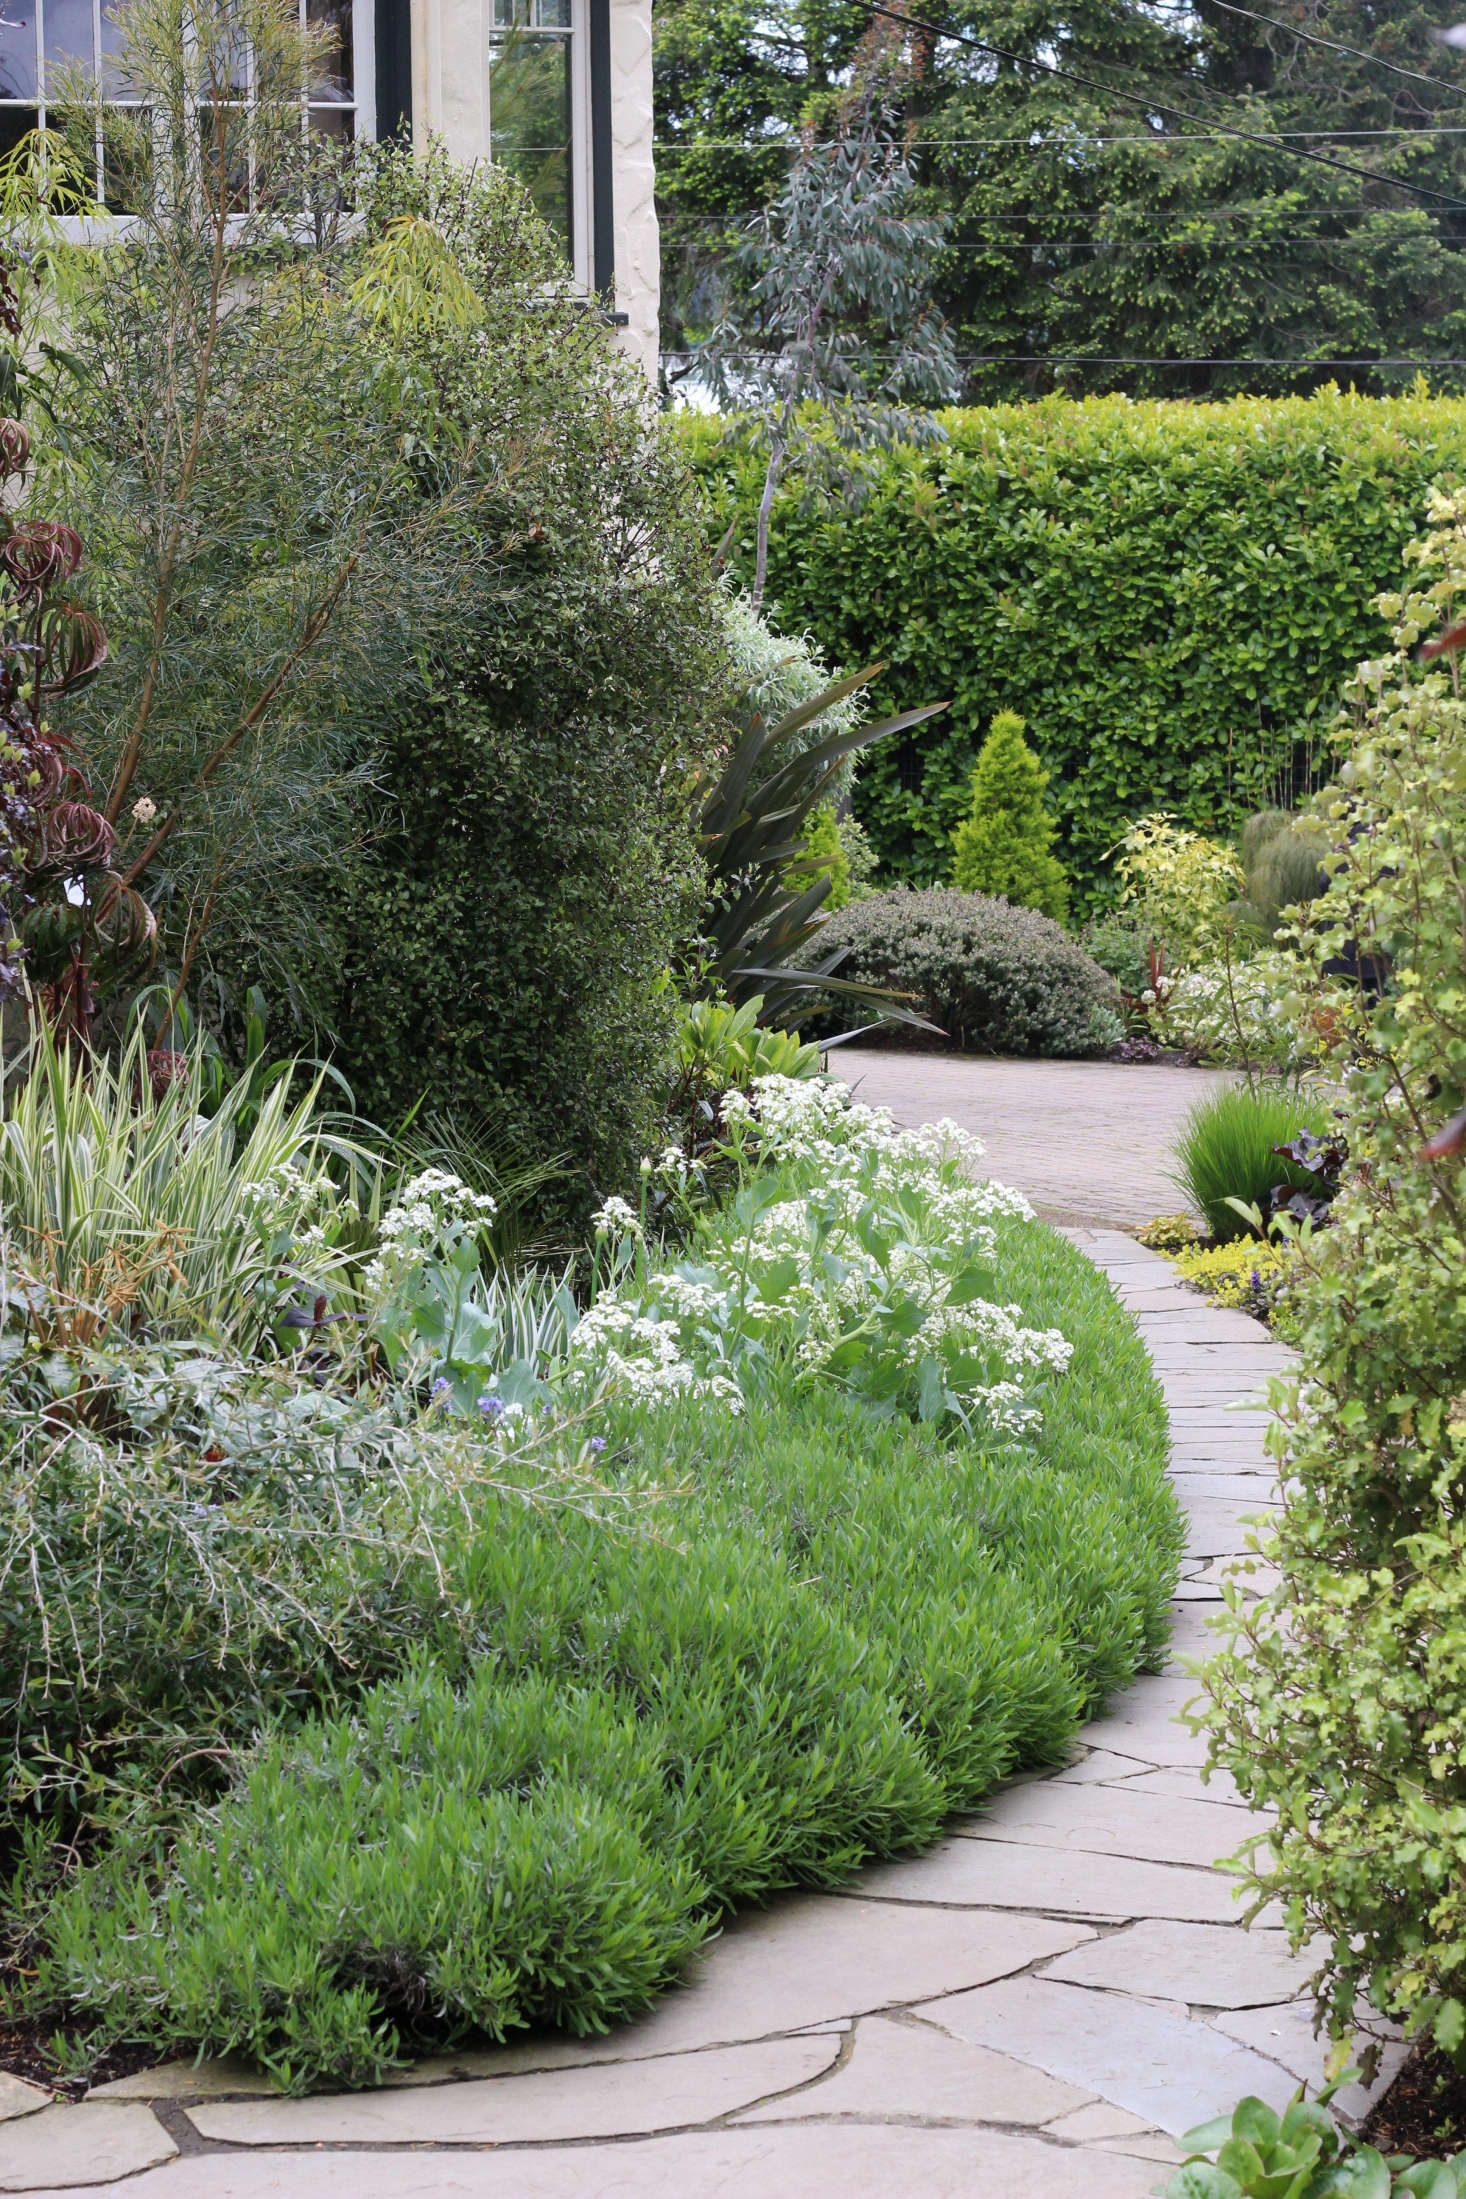 The front path edged with lavender and Crambe cordifolia just coming into bloom.Photograph by Graham Smyth.